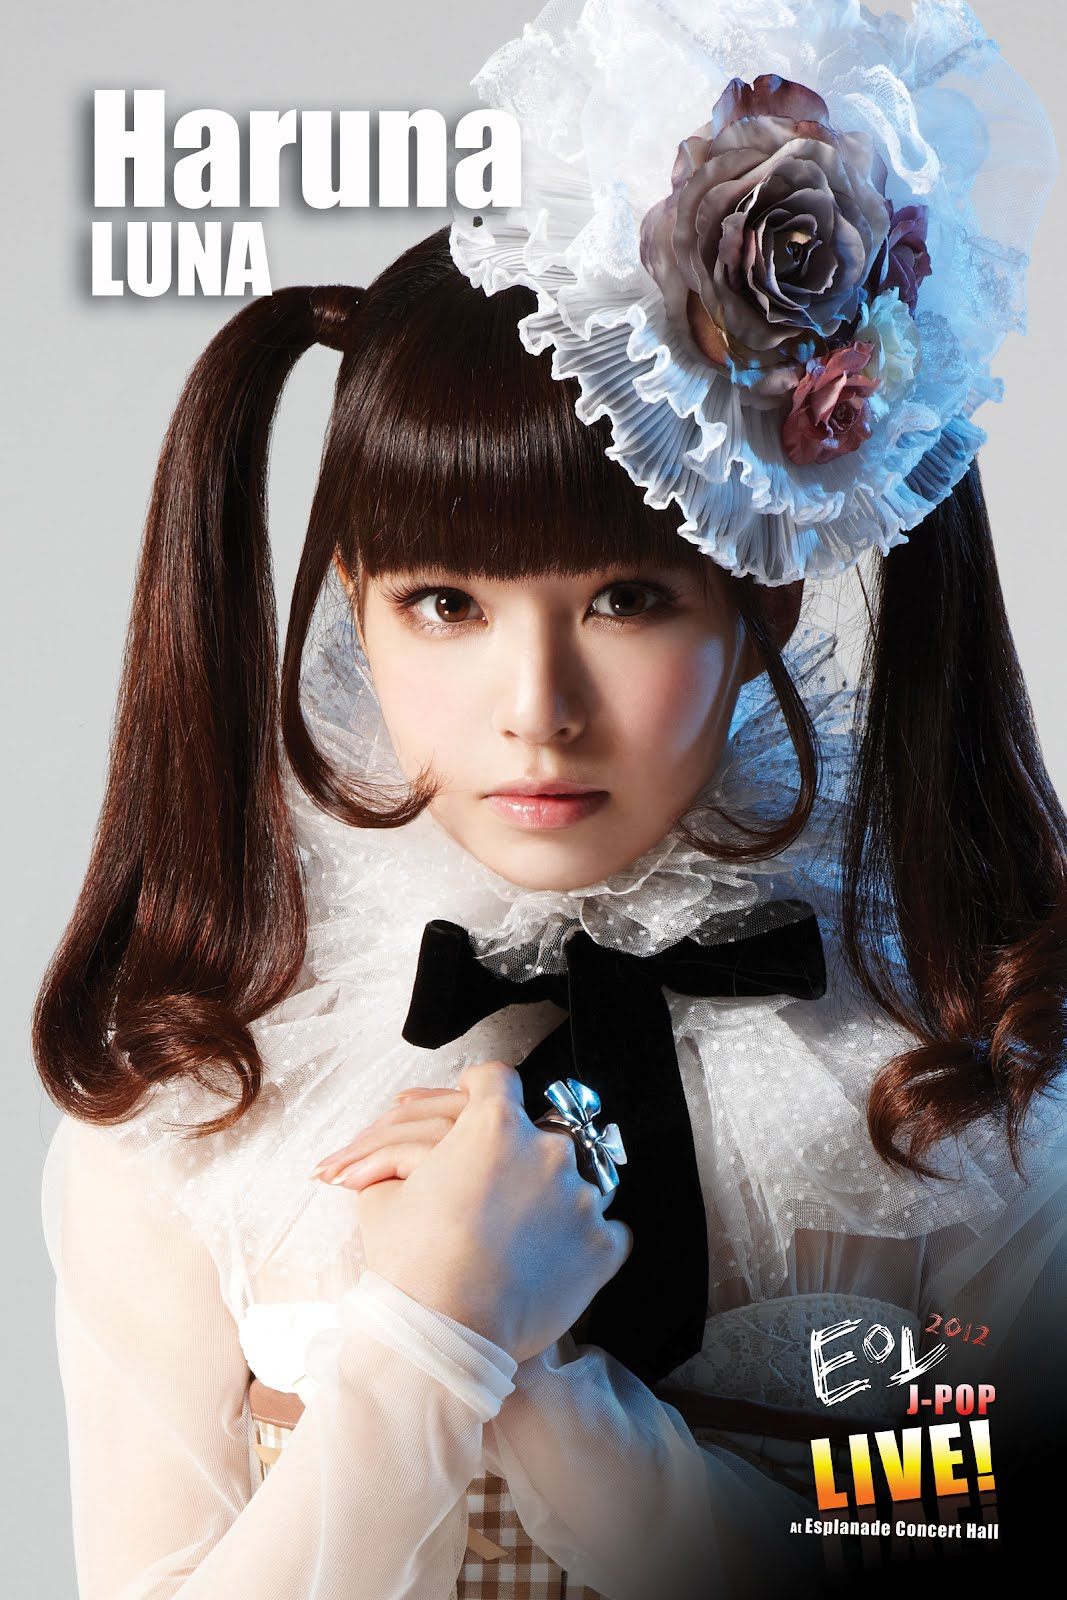 SG: Haruna Luna for The EOY'12